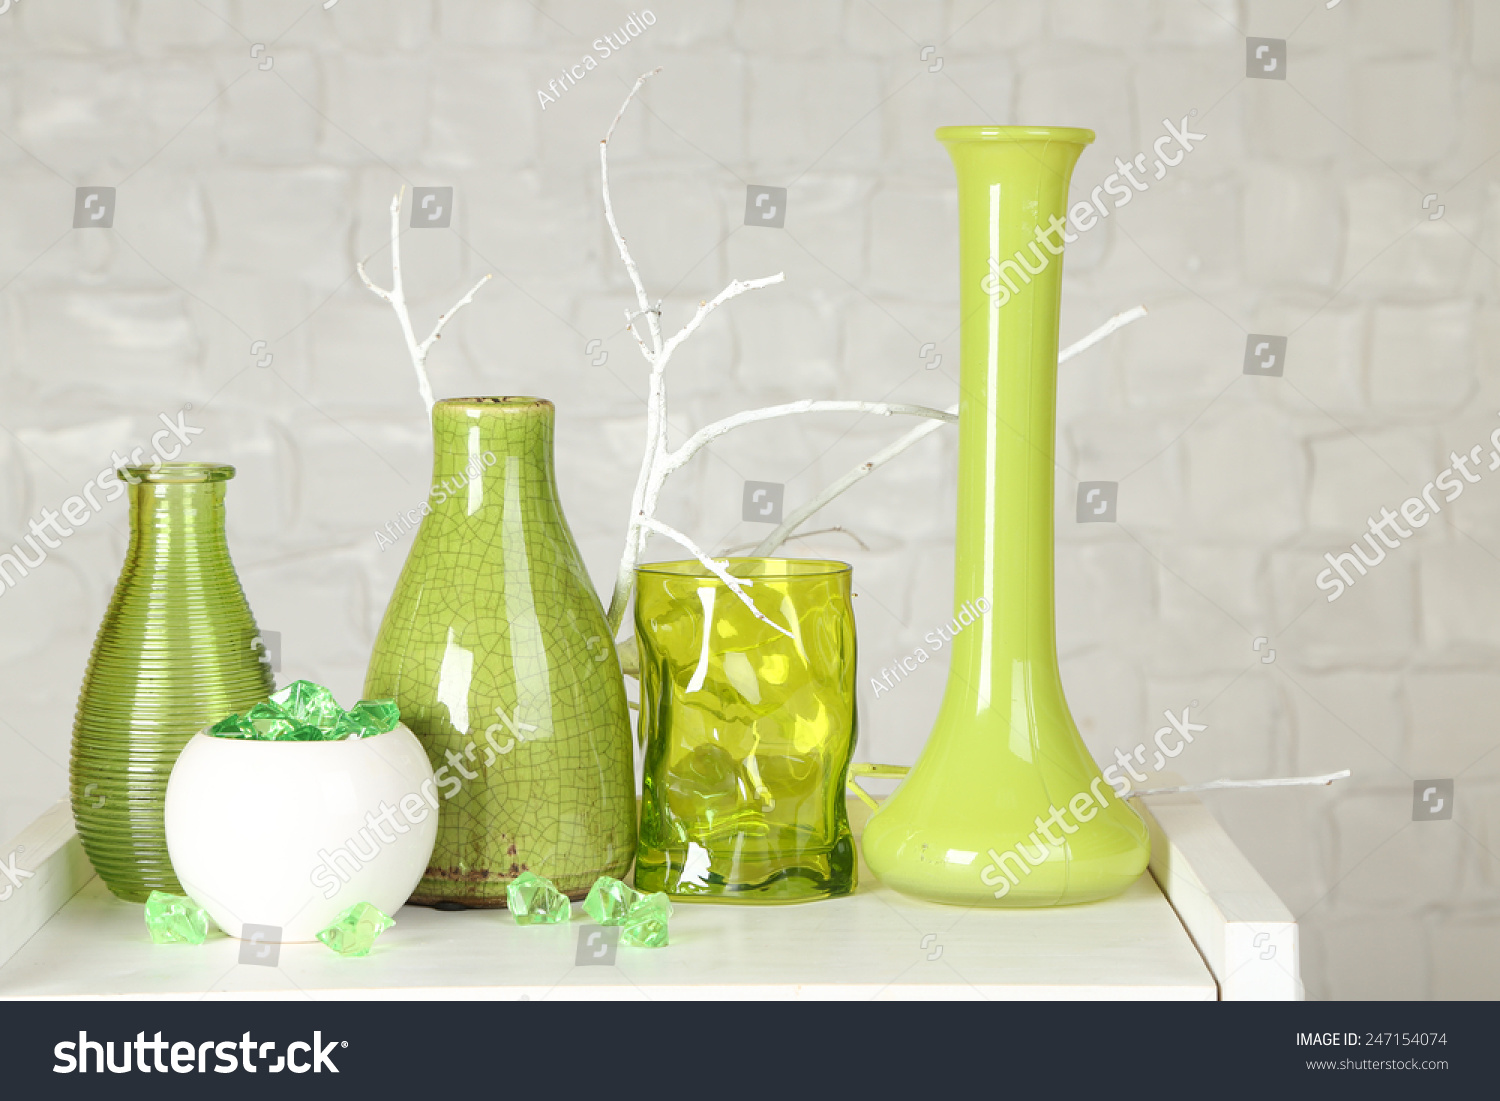 vase vectorstock vases vector decorative image free royalty